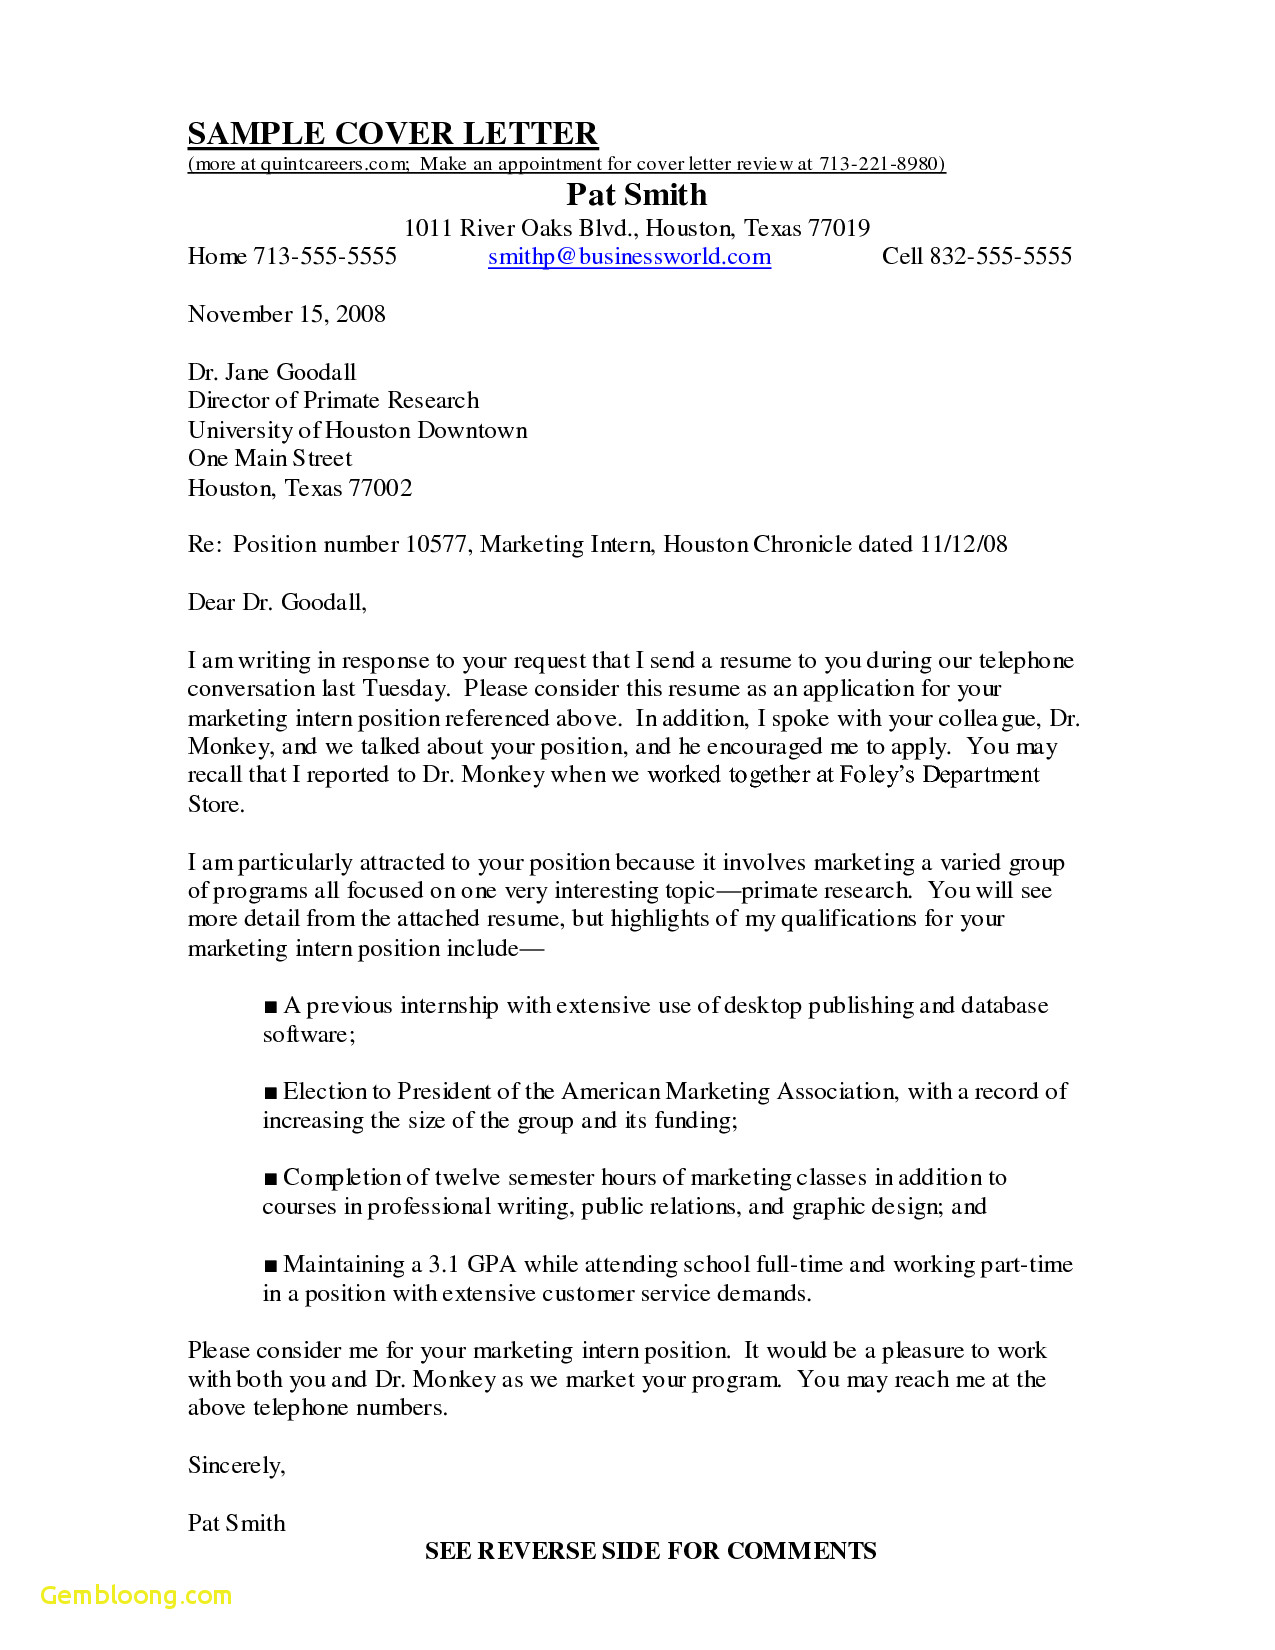 Texas A M Cover Letter Template